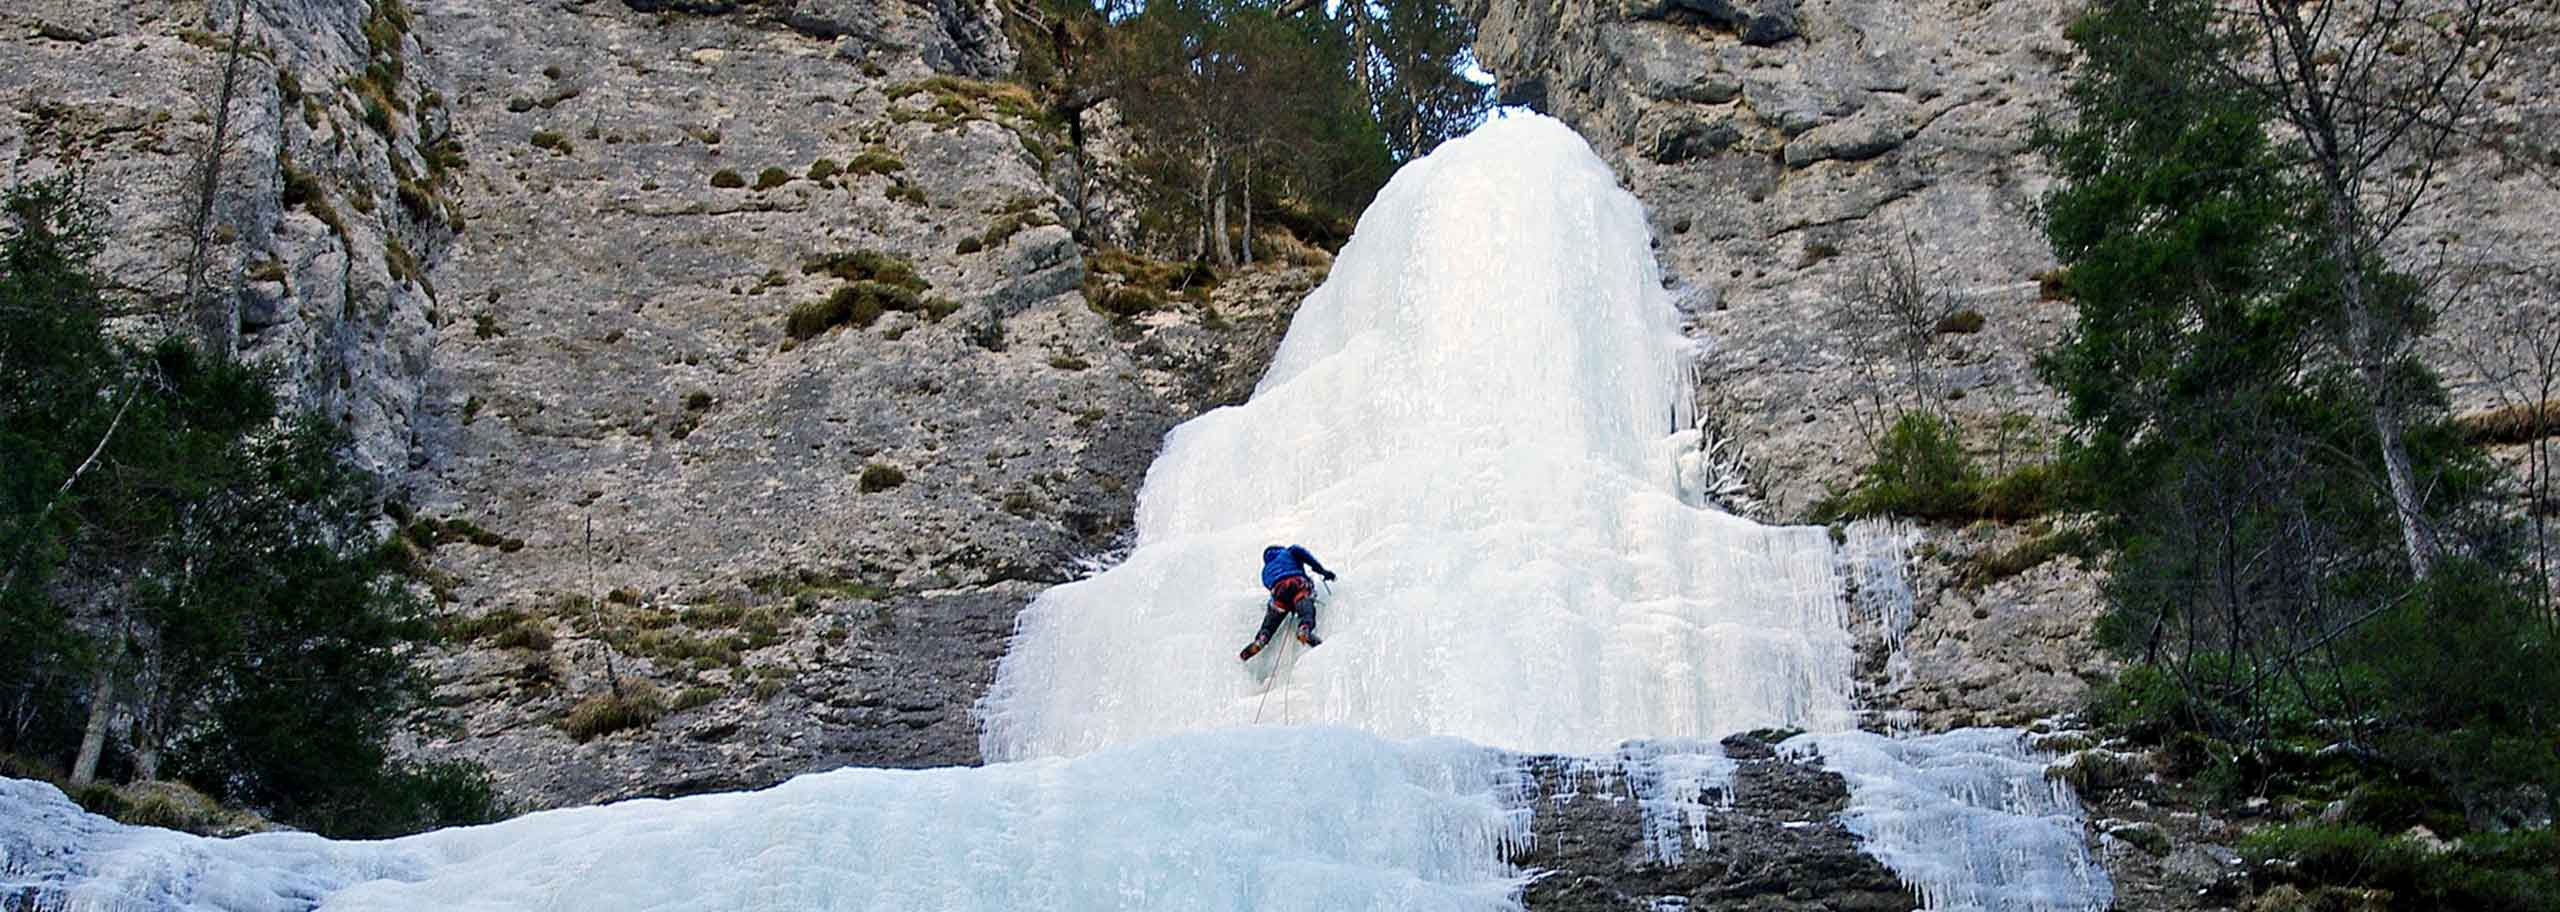 Ice Climbing with a Mountain Guide in the Alpe di Siusi